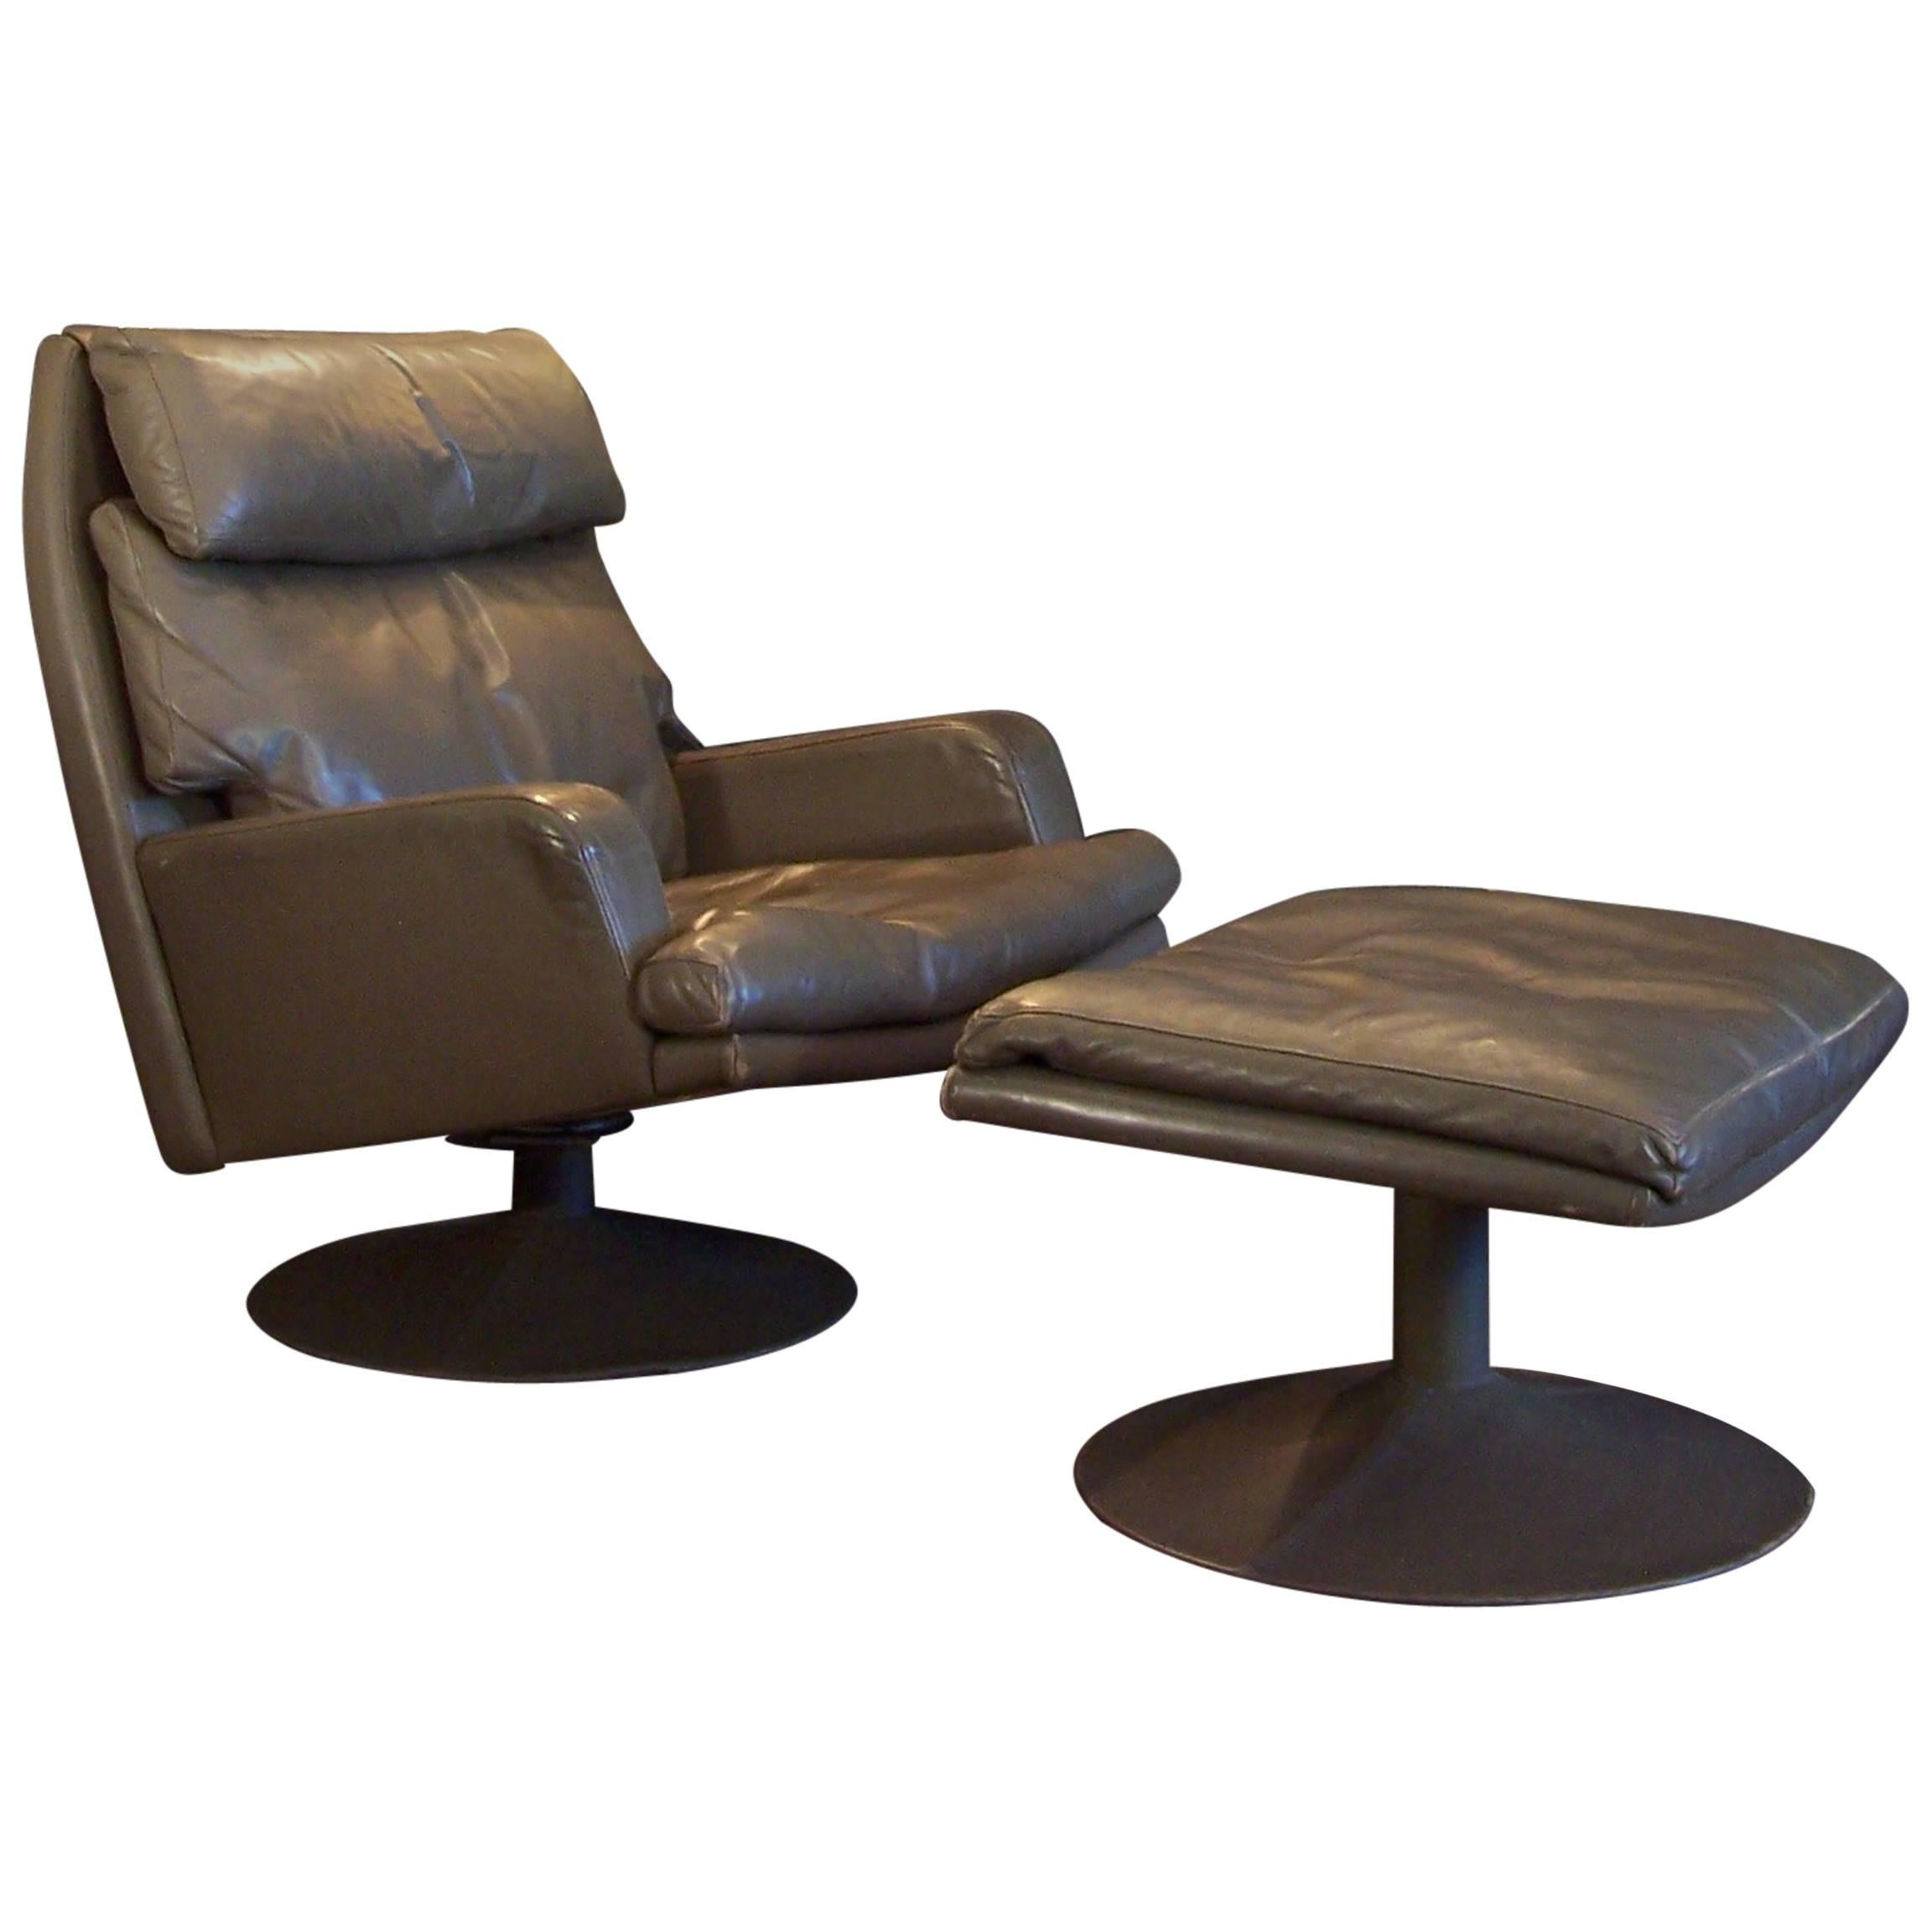 Large Vintage Leather Swivel Chair and Ottoman